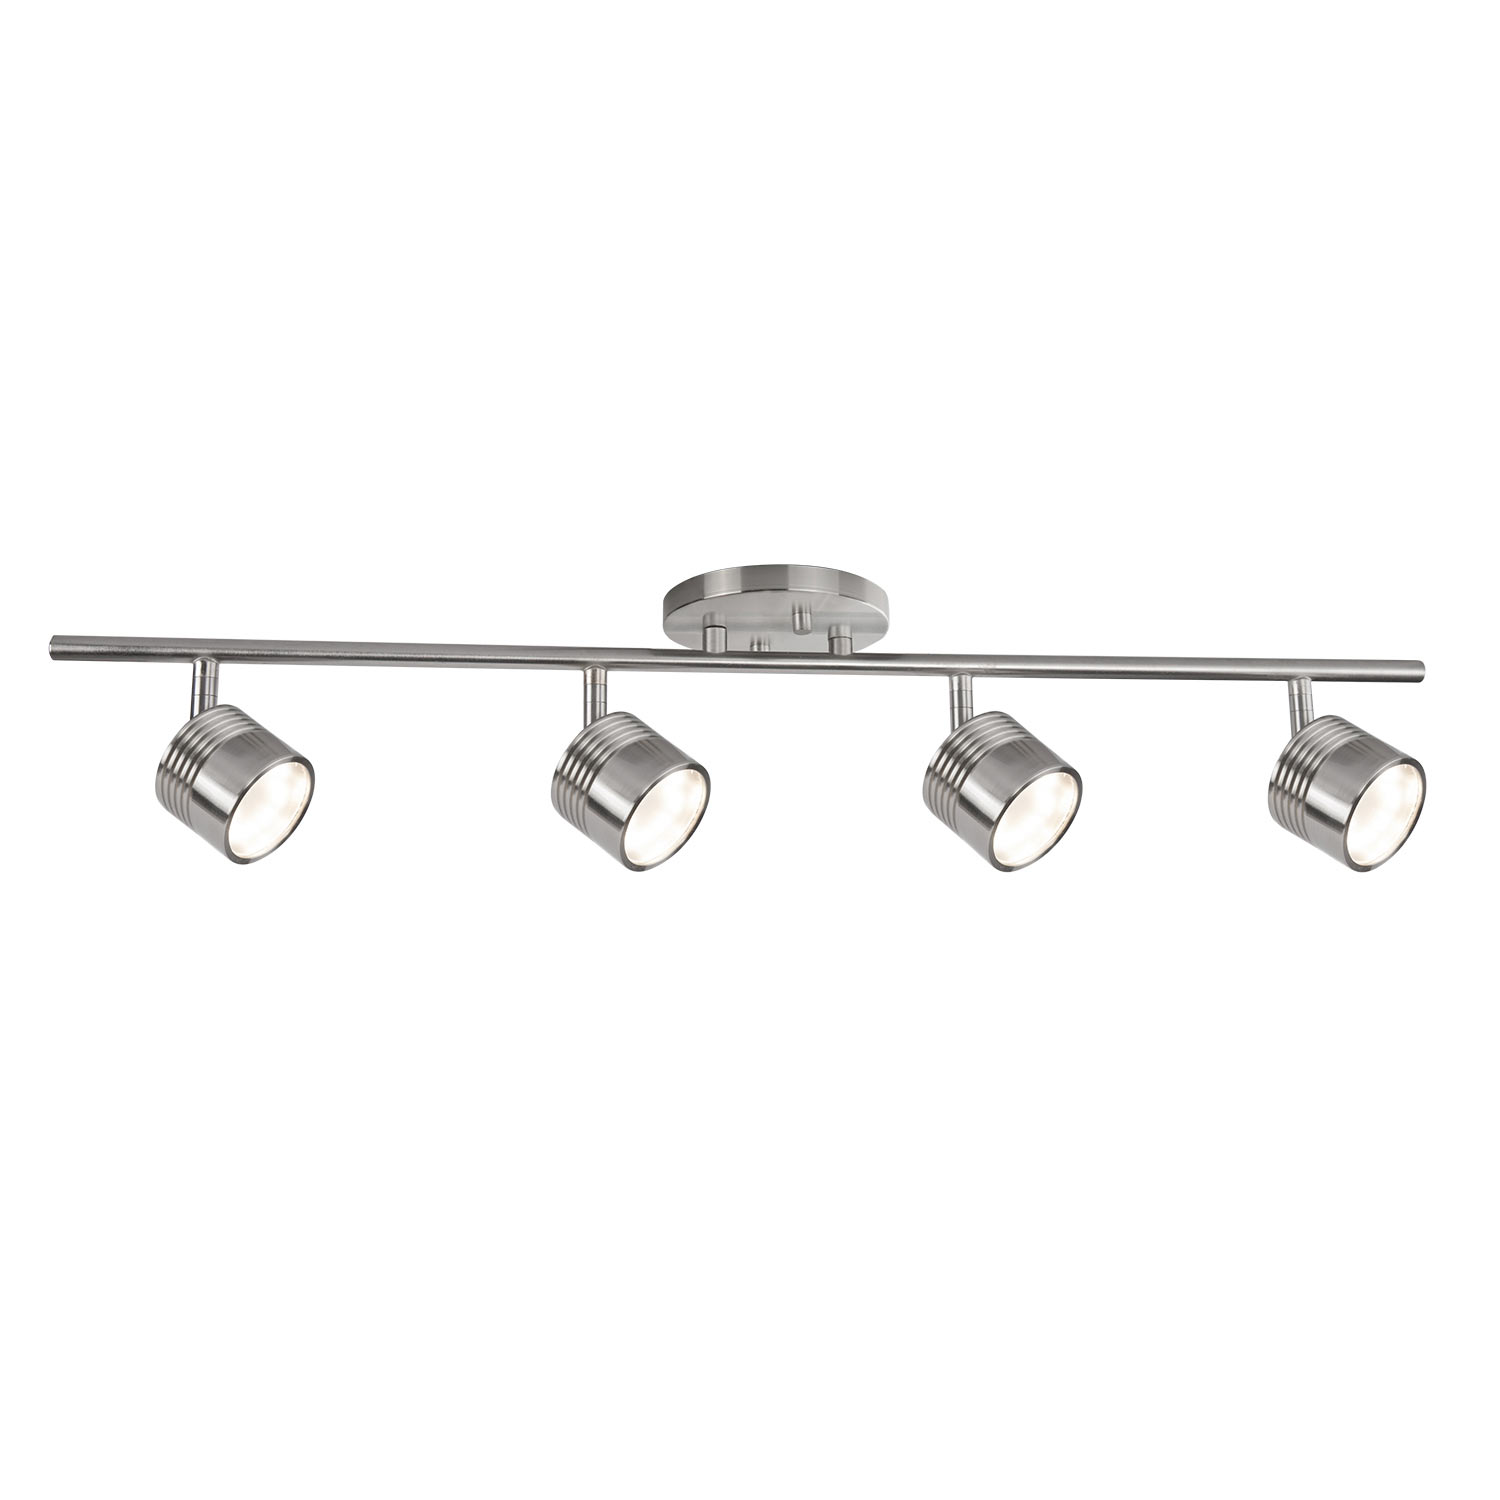 Led Track Lighting : products led fixed track fixture tr10031 modern led fixed track ...